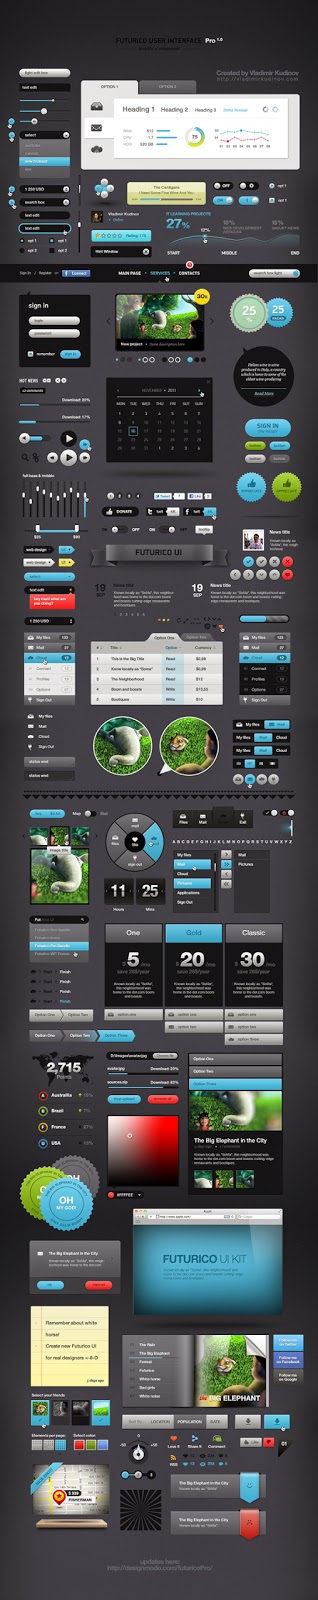 Futurico UI Elements Pack PSD